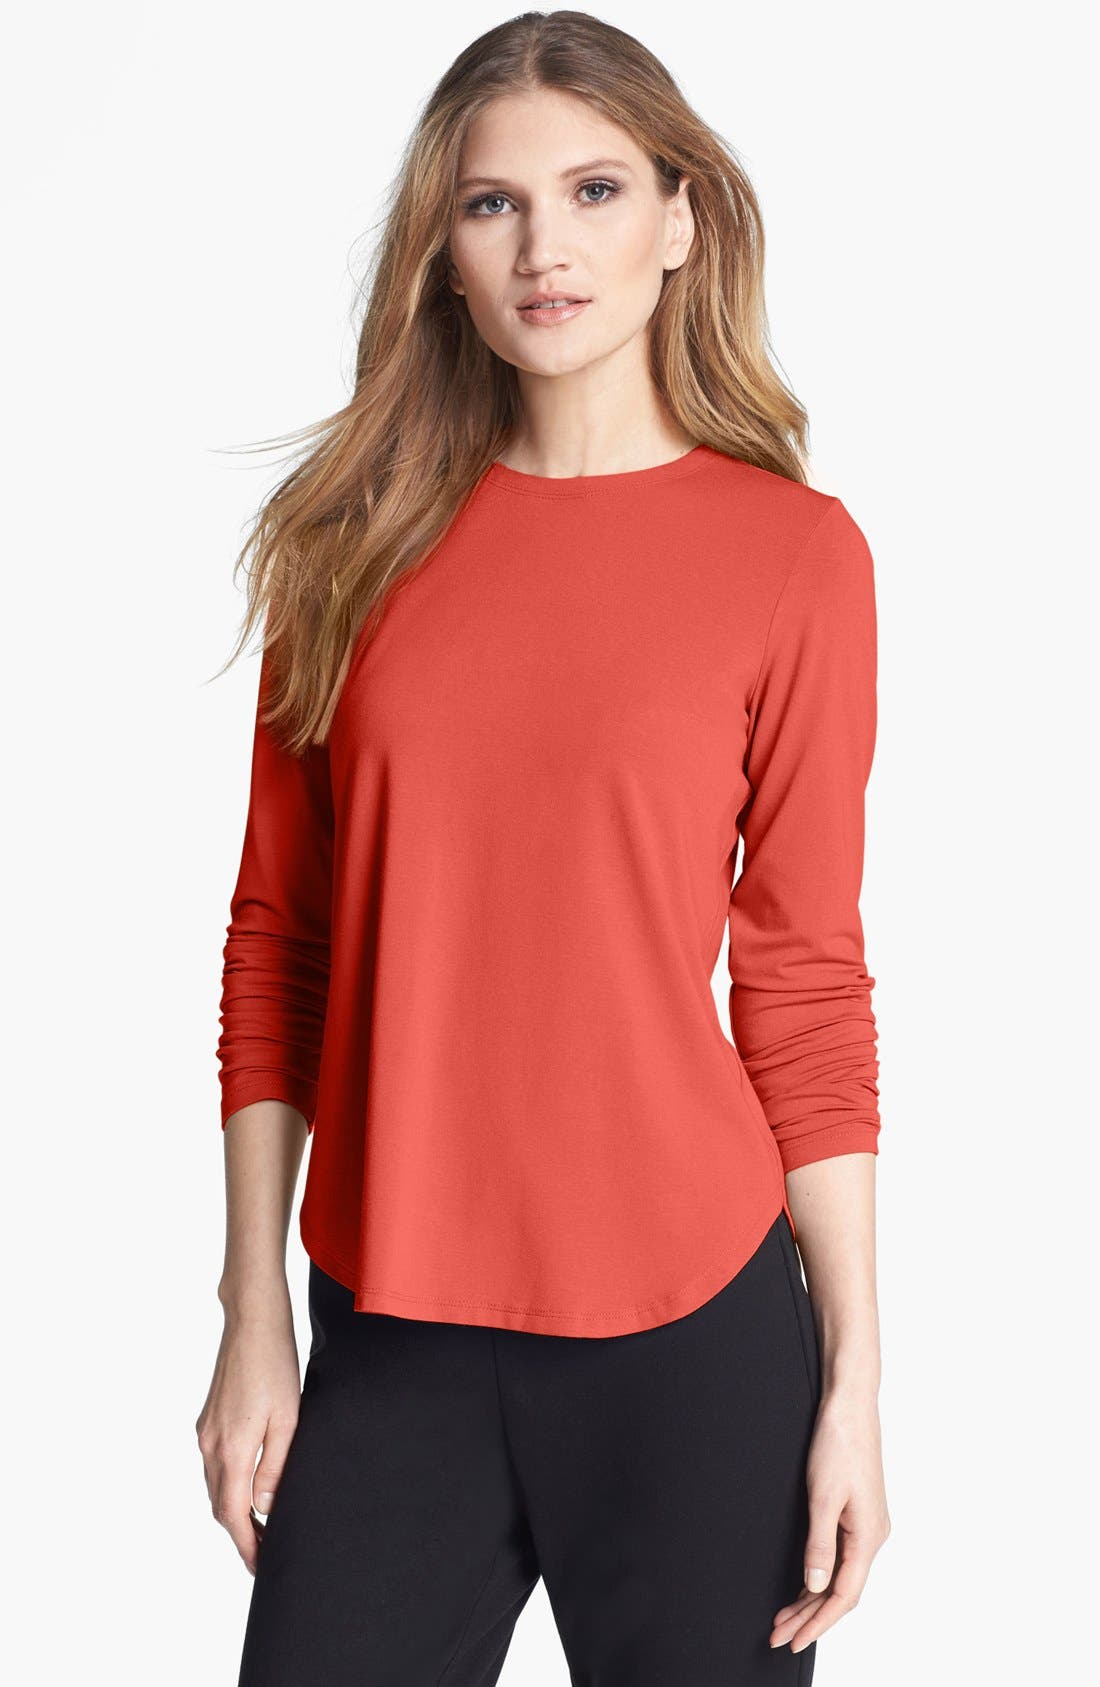 Alternate Image 1 Selected - Eileen Fisher Stretch Jersey Crewneck Tee